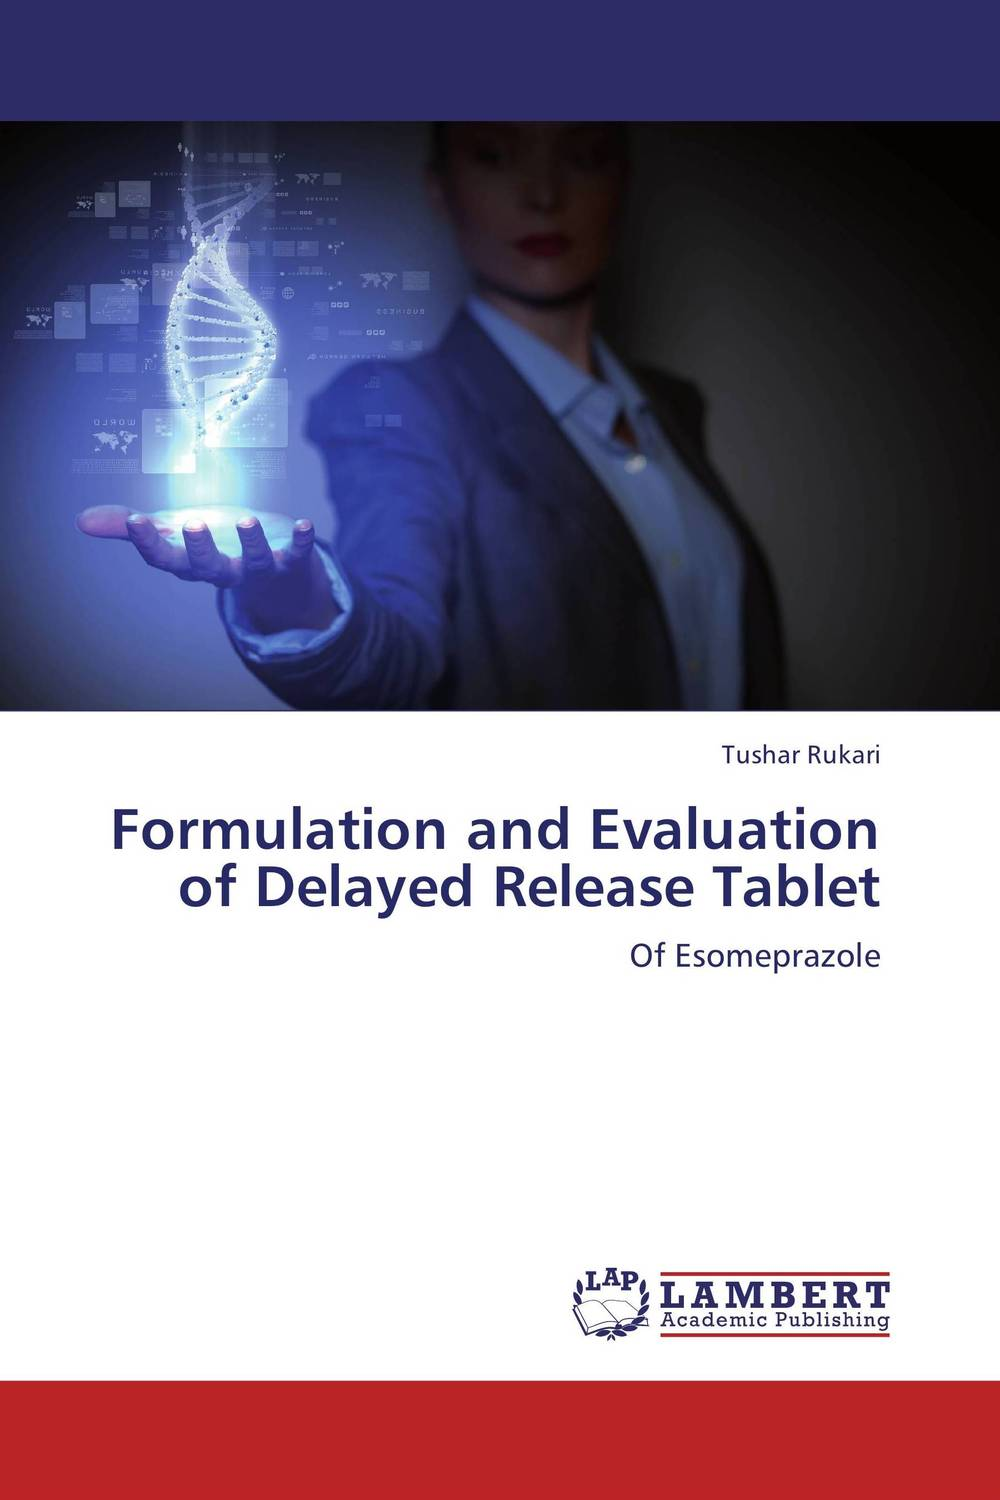 Formulation and Evaluation of Delayed Release Tablet amita yadav kamal singh rathore and geeta m patel formulation evaluation and optimization of mouth dissolving tablets